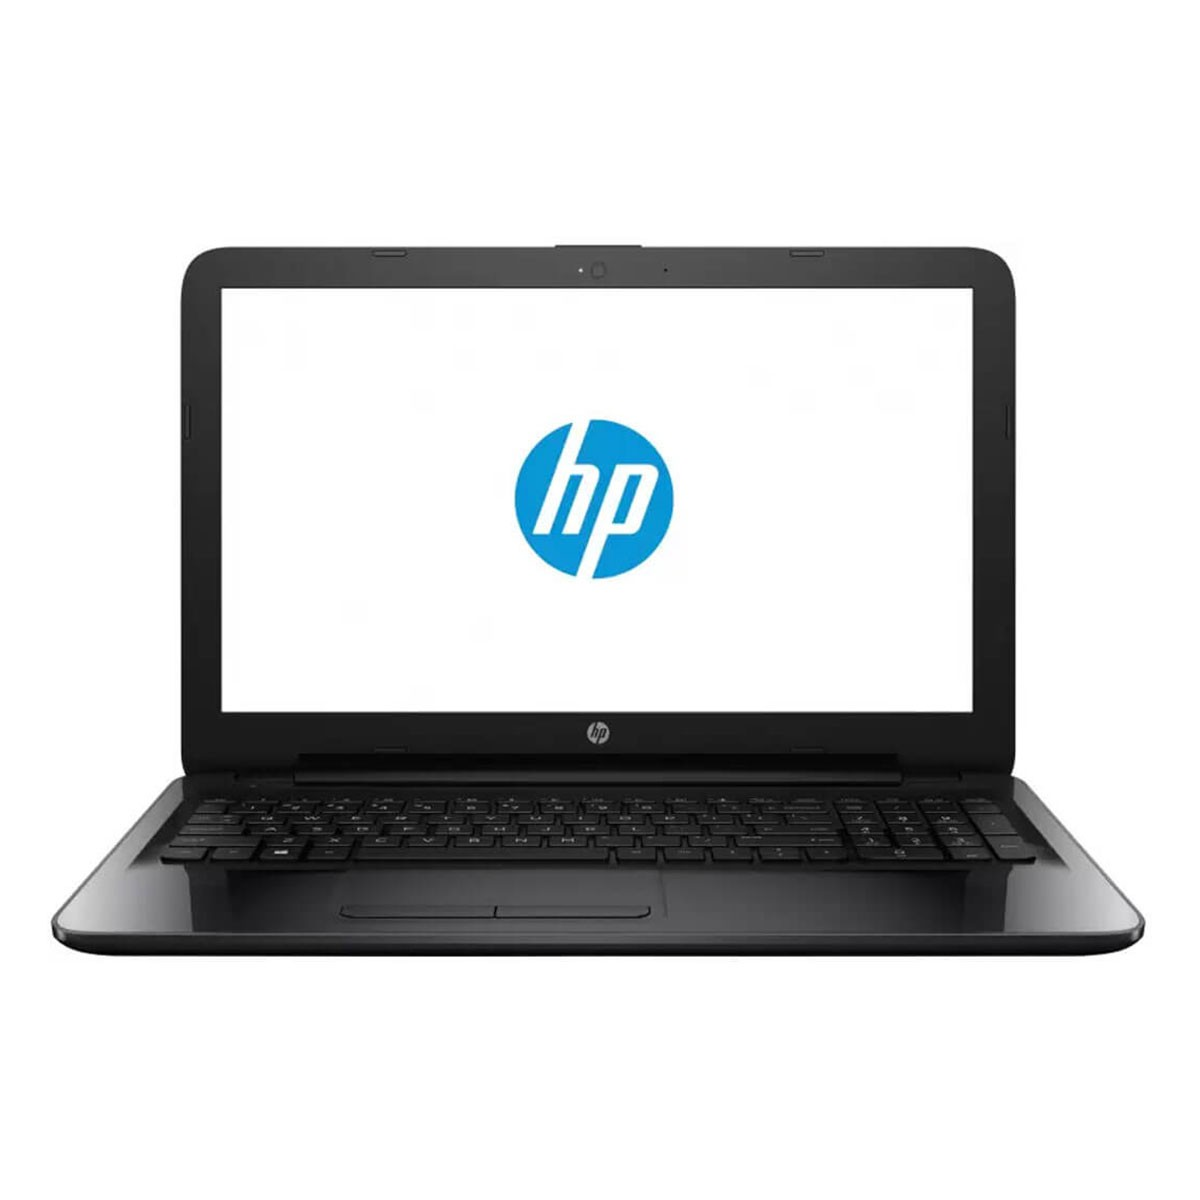 Hp-HP 430(Core i5 2410M 2.30GHz/4GB/500GB) 5CB12437TW